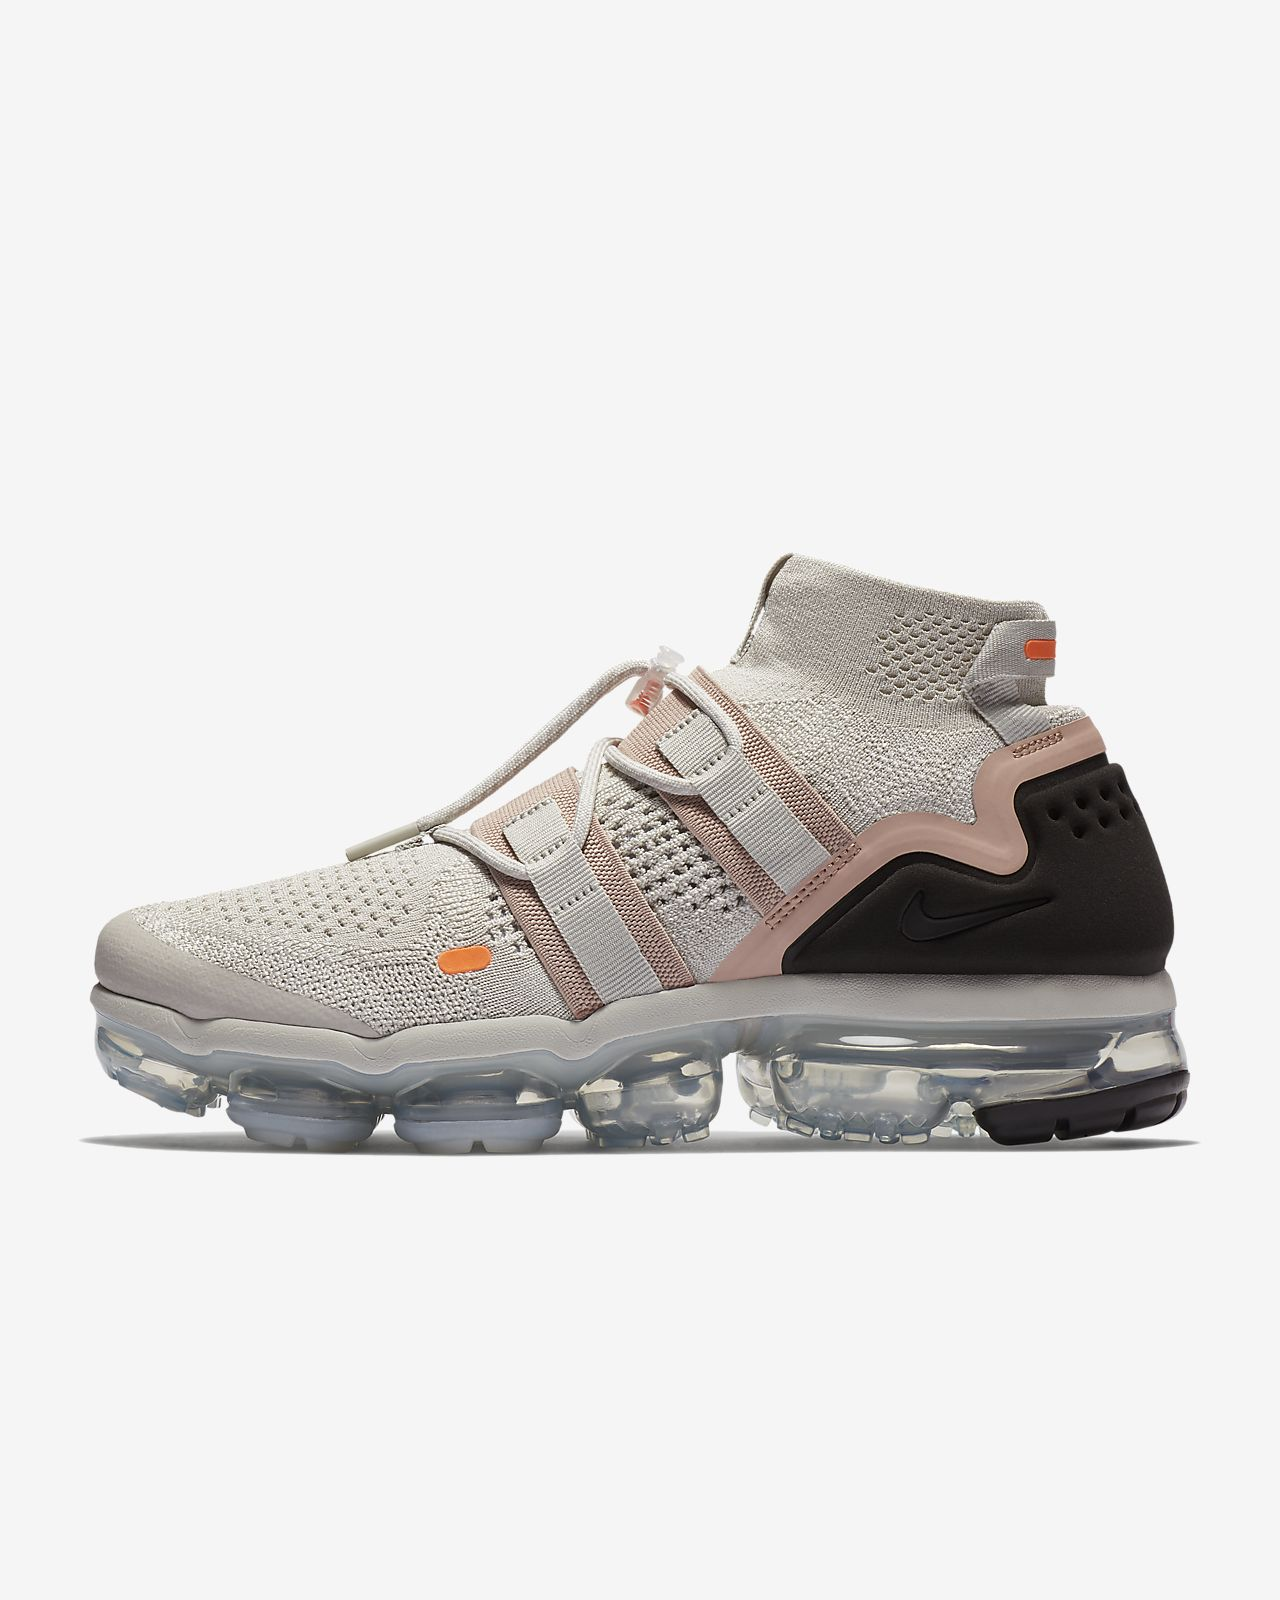 detailed look a31eb 052b6 Nike Air Vapormax SchuhAt Utility Flyknit 54ARjS3qcL